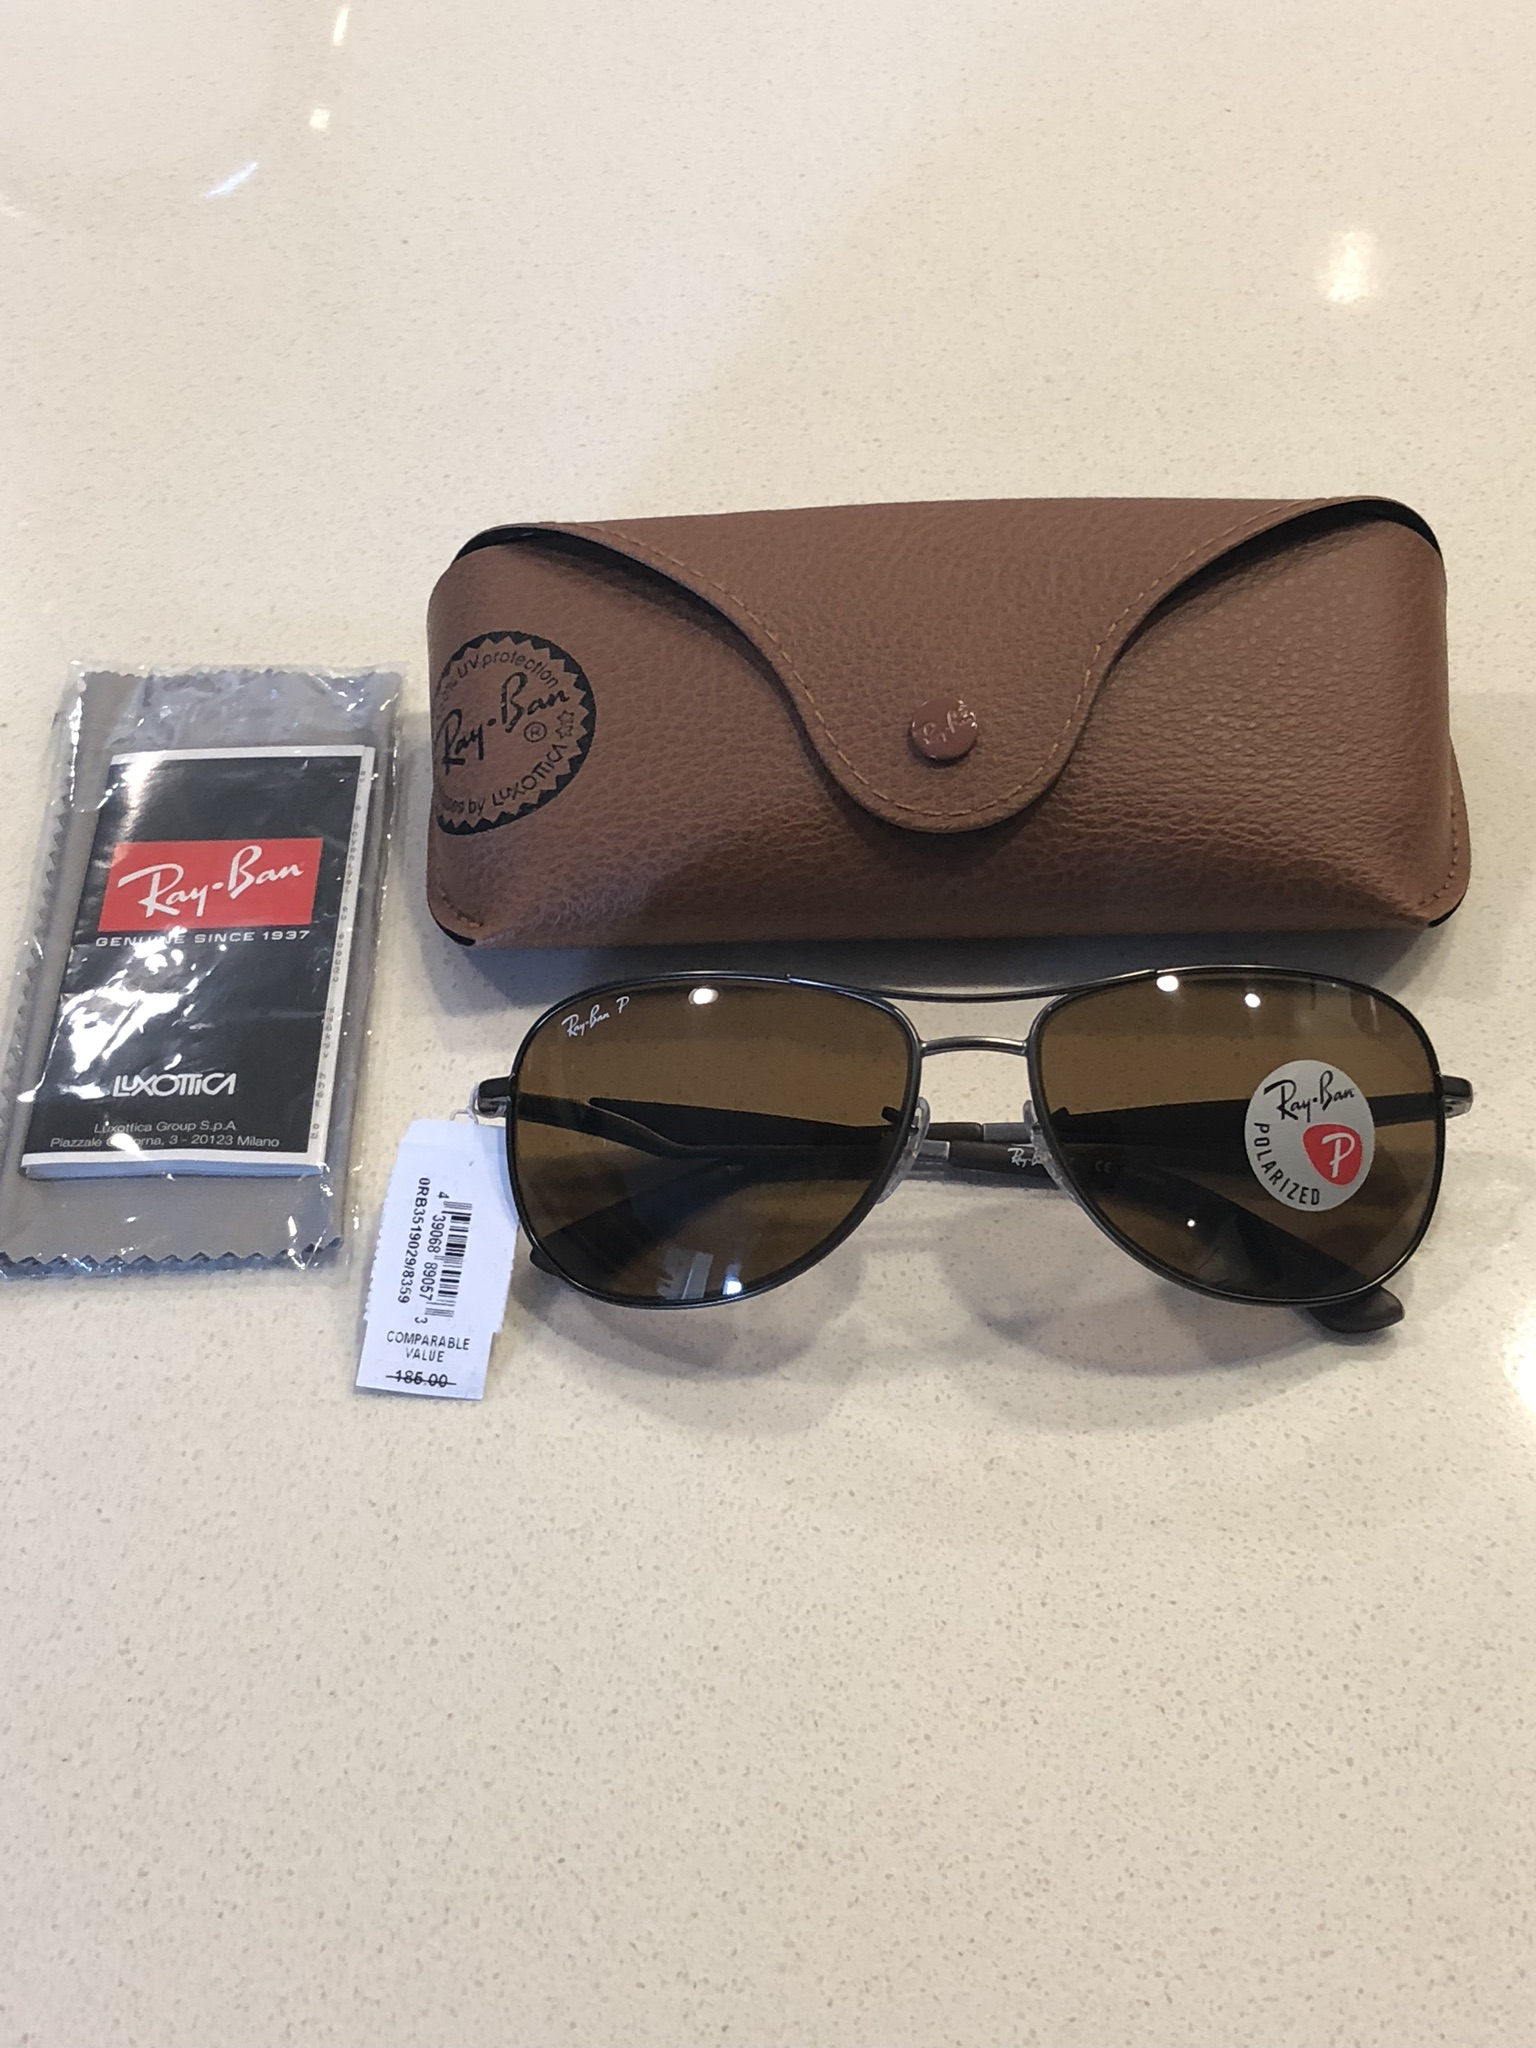 1640fbb5fa4 RayBan New Authentic Ray Ban Pilot Sunglasses RB3519 029 83 Brown Polarized  Lens  185 Size one size - Sunglasses for Sale - Grailed